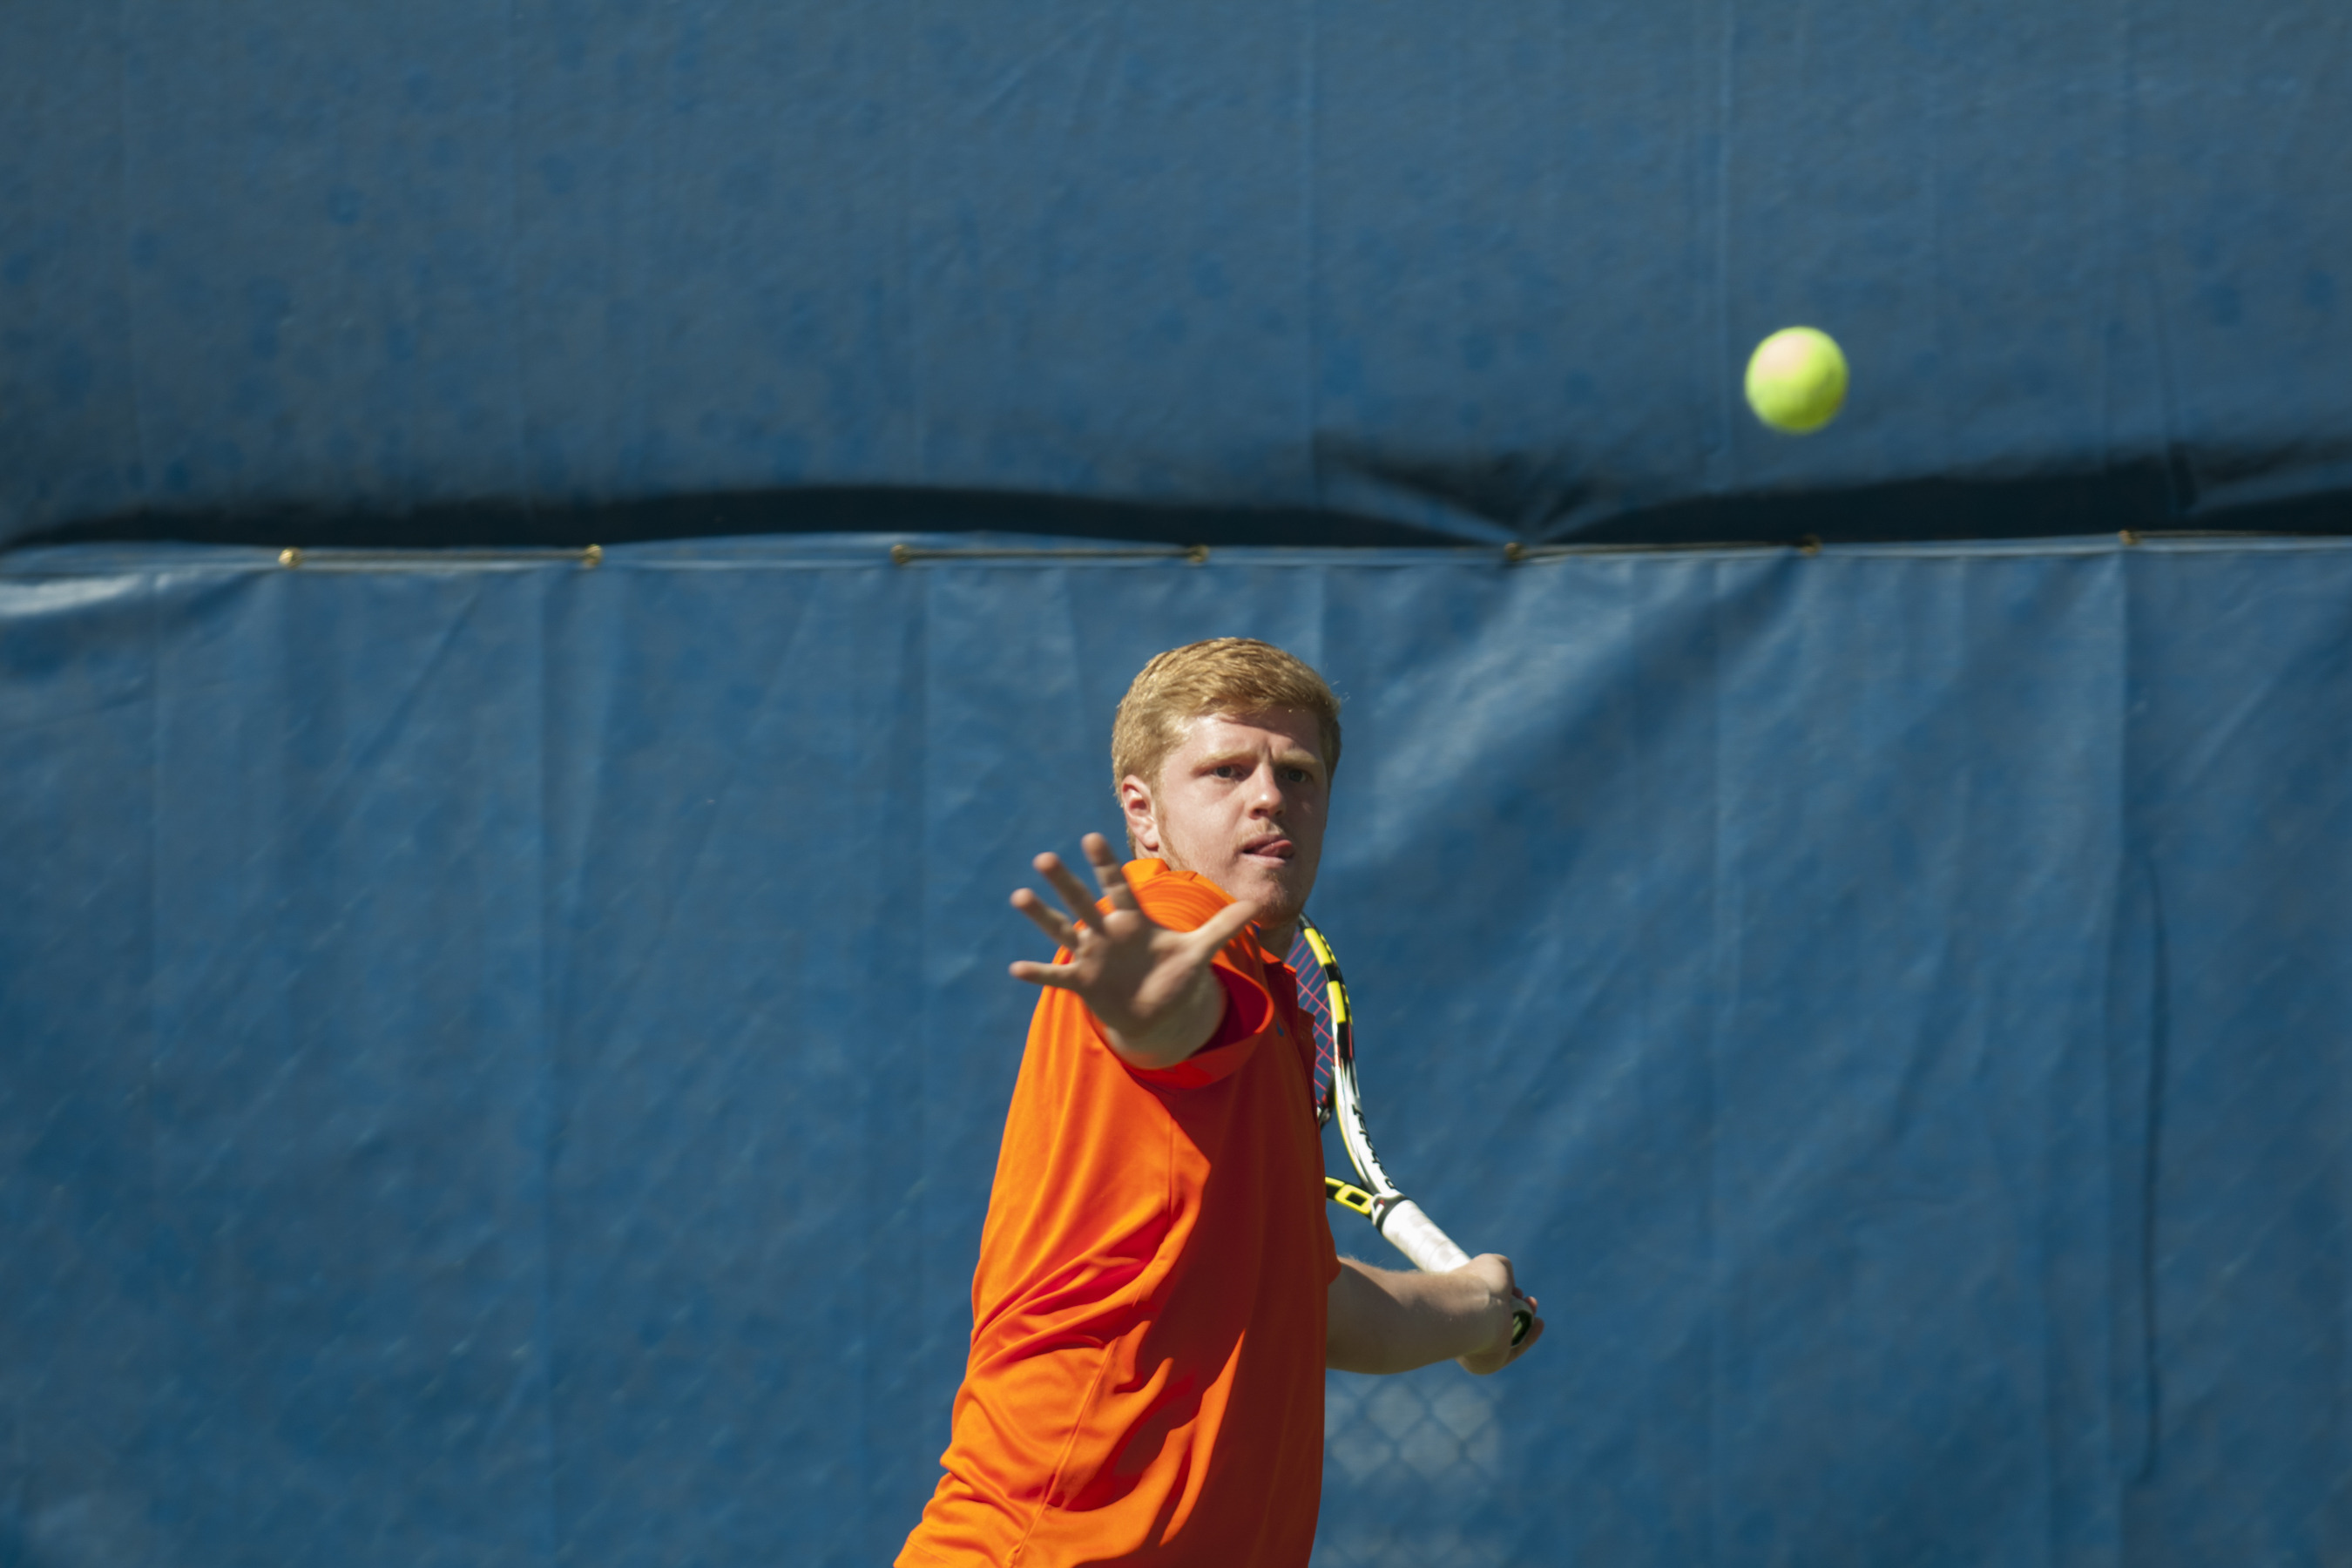 Lewis Roskilly won No. 5 singles.